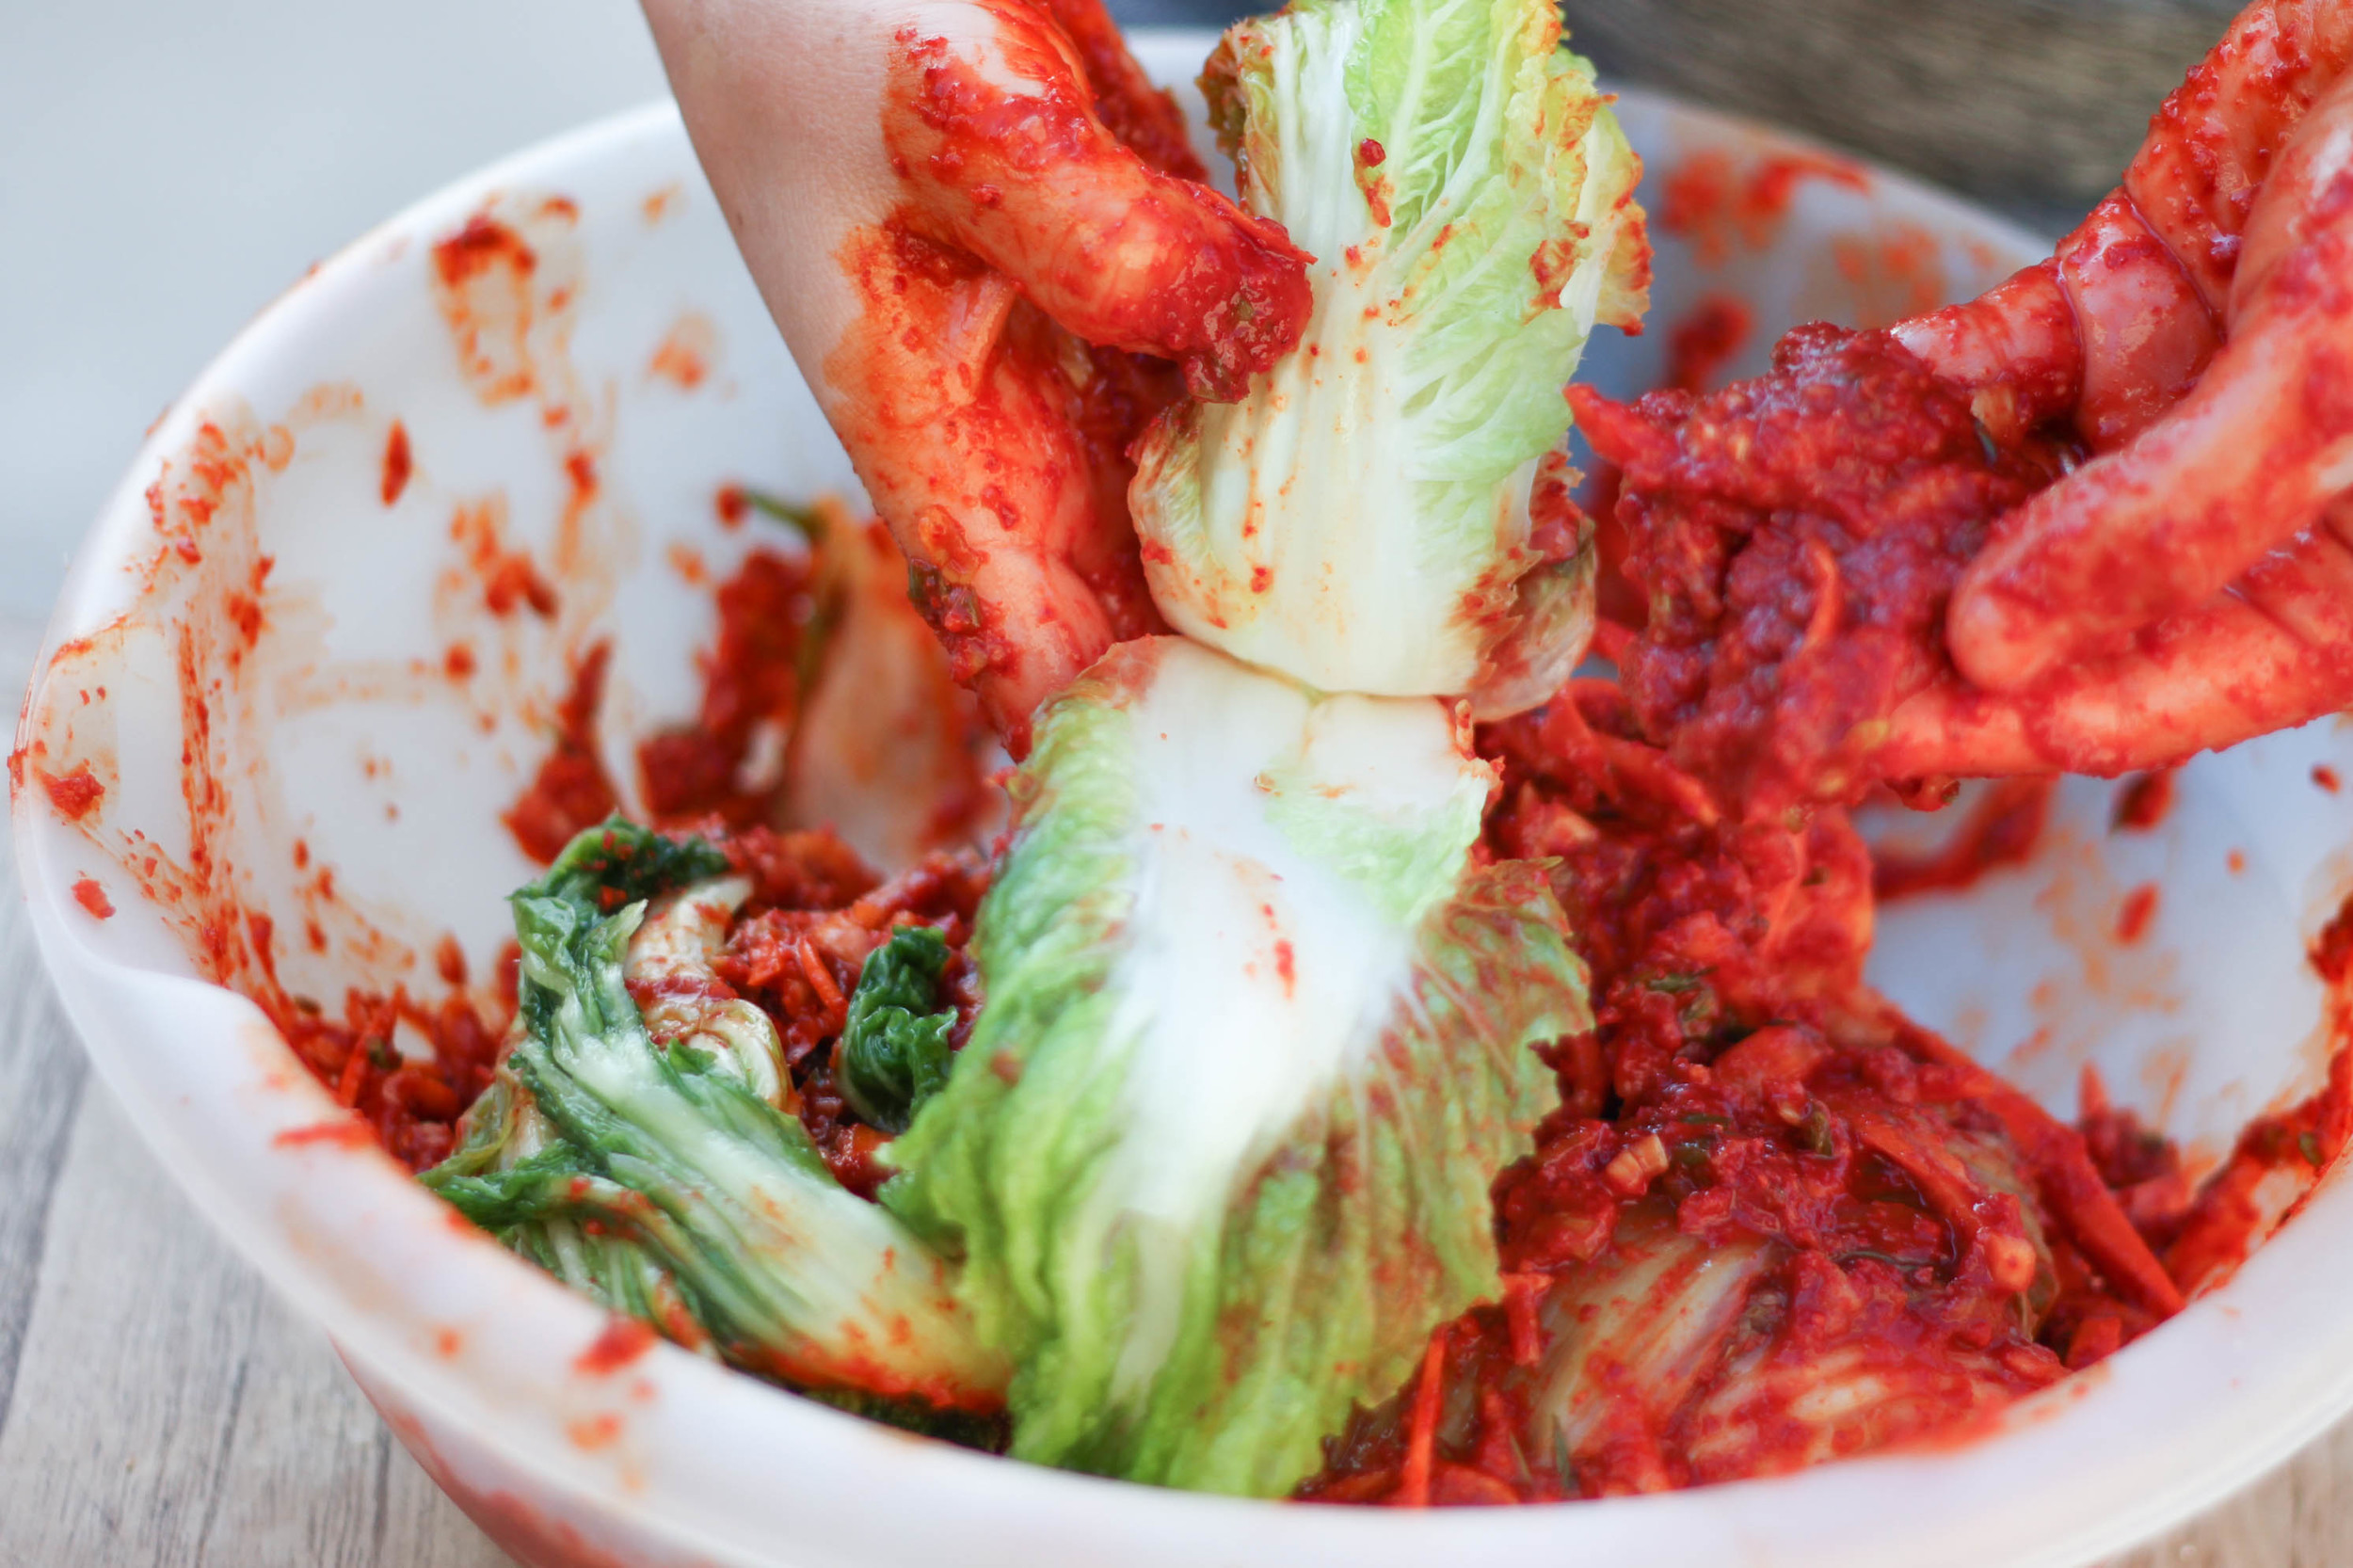 Spread kimchi paste thoroughly onto napa cabbage. Don't be lazy. Make sure to get in-between the leaves.